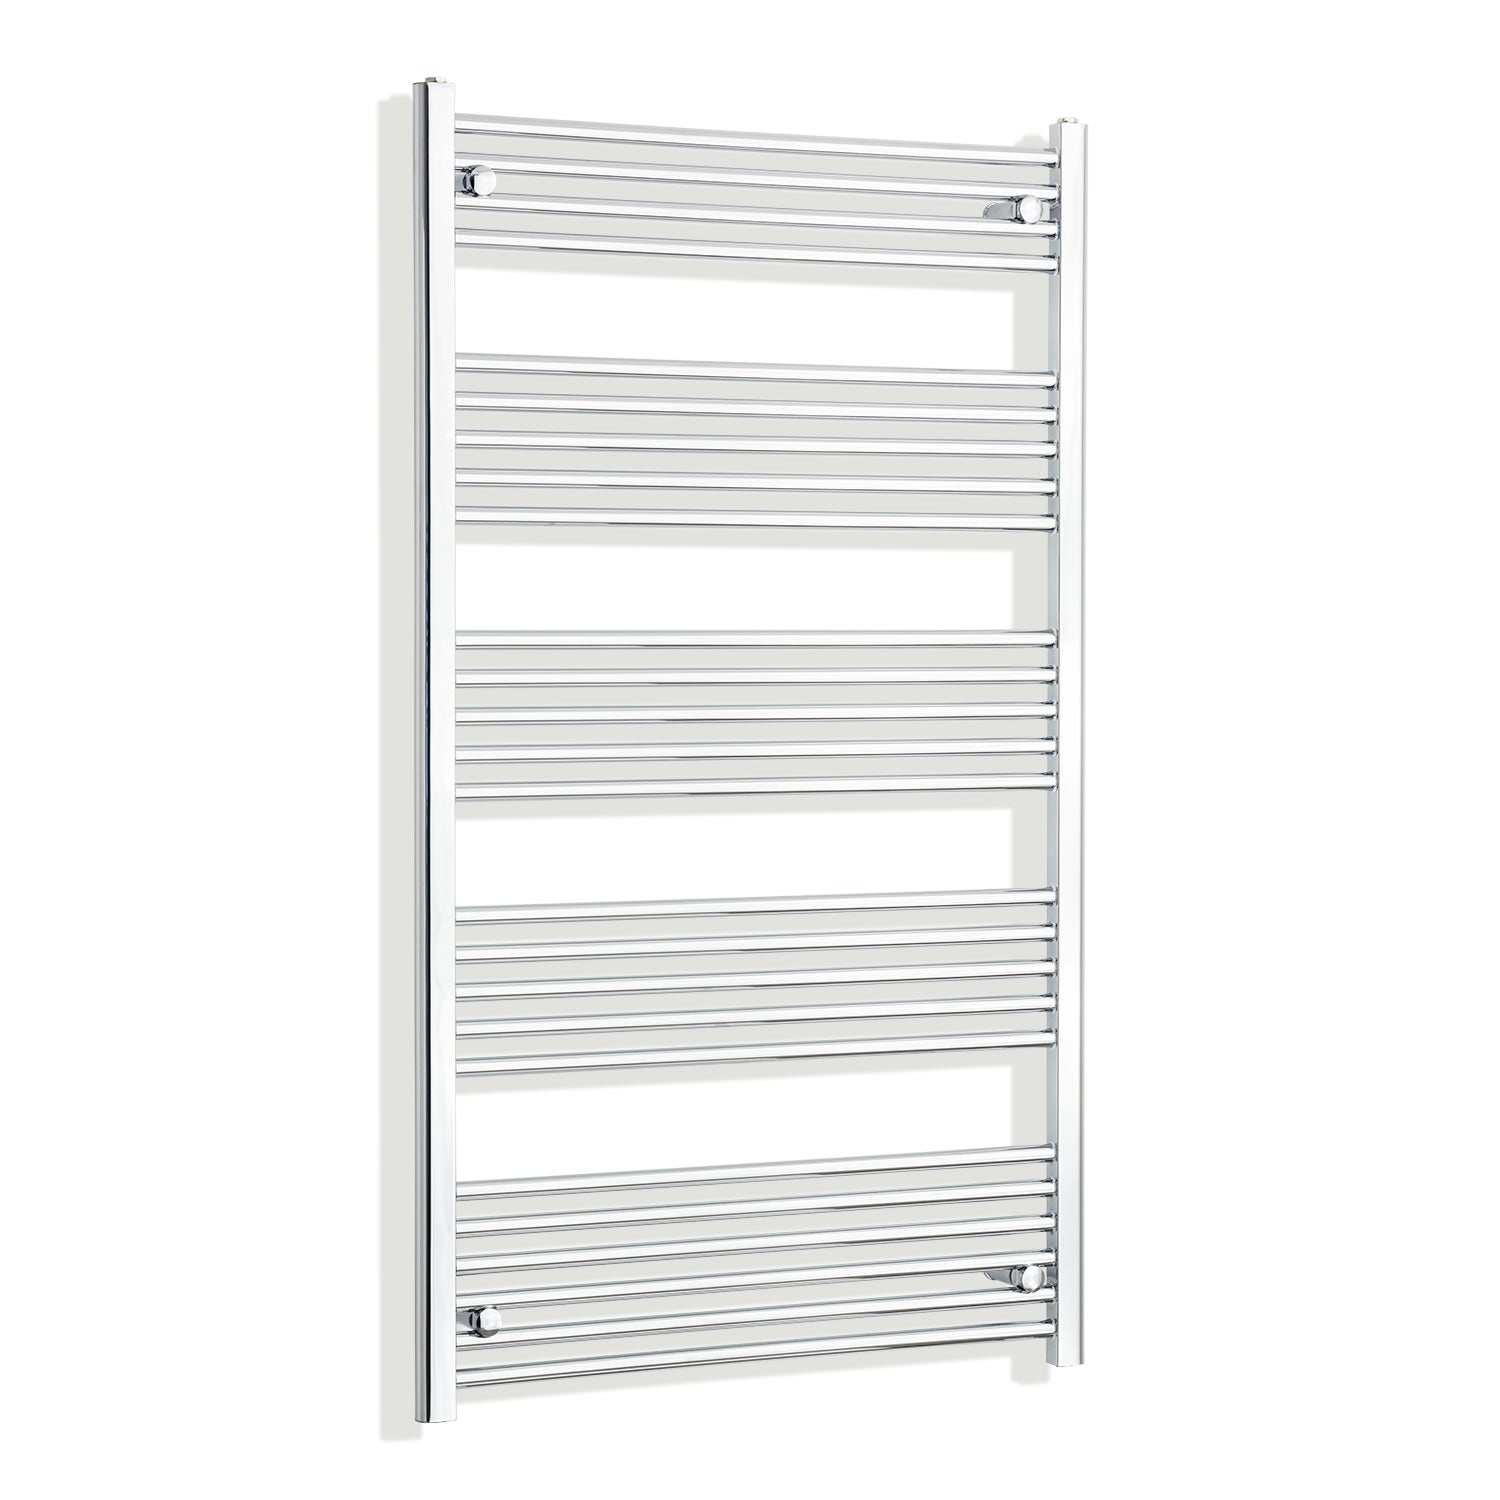 800mm Wide 1400mm High Chrome Towel Rail Radiator